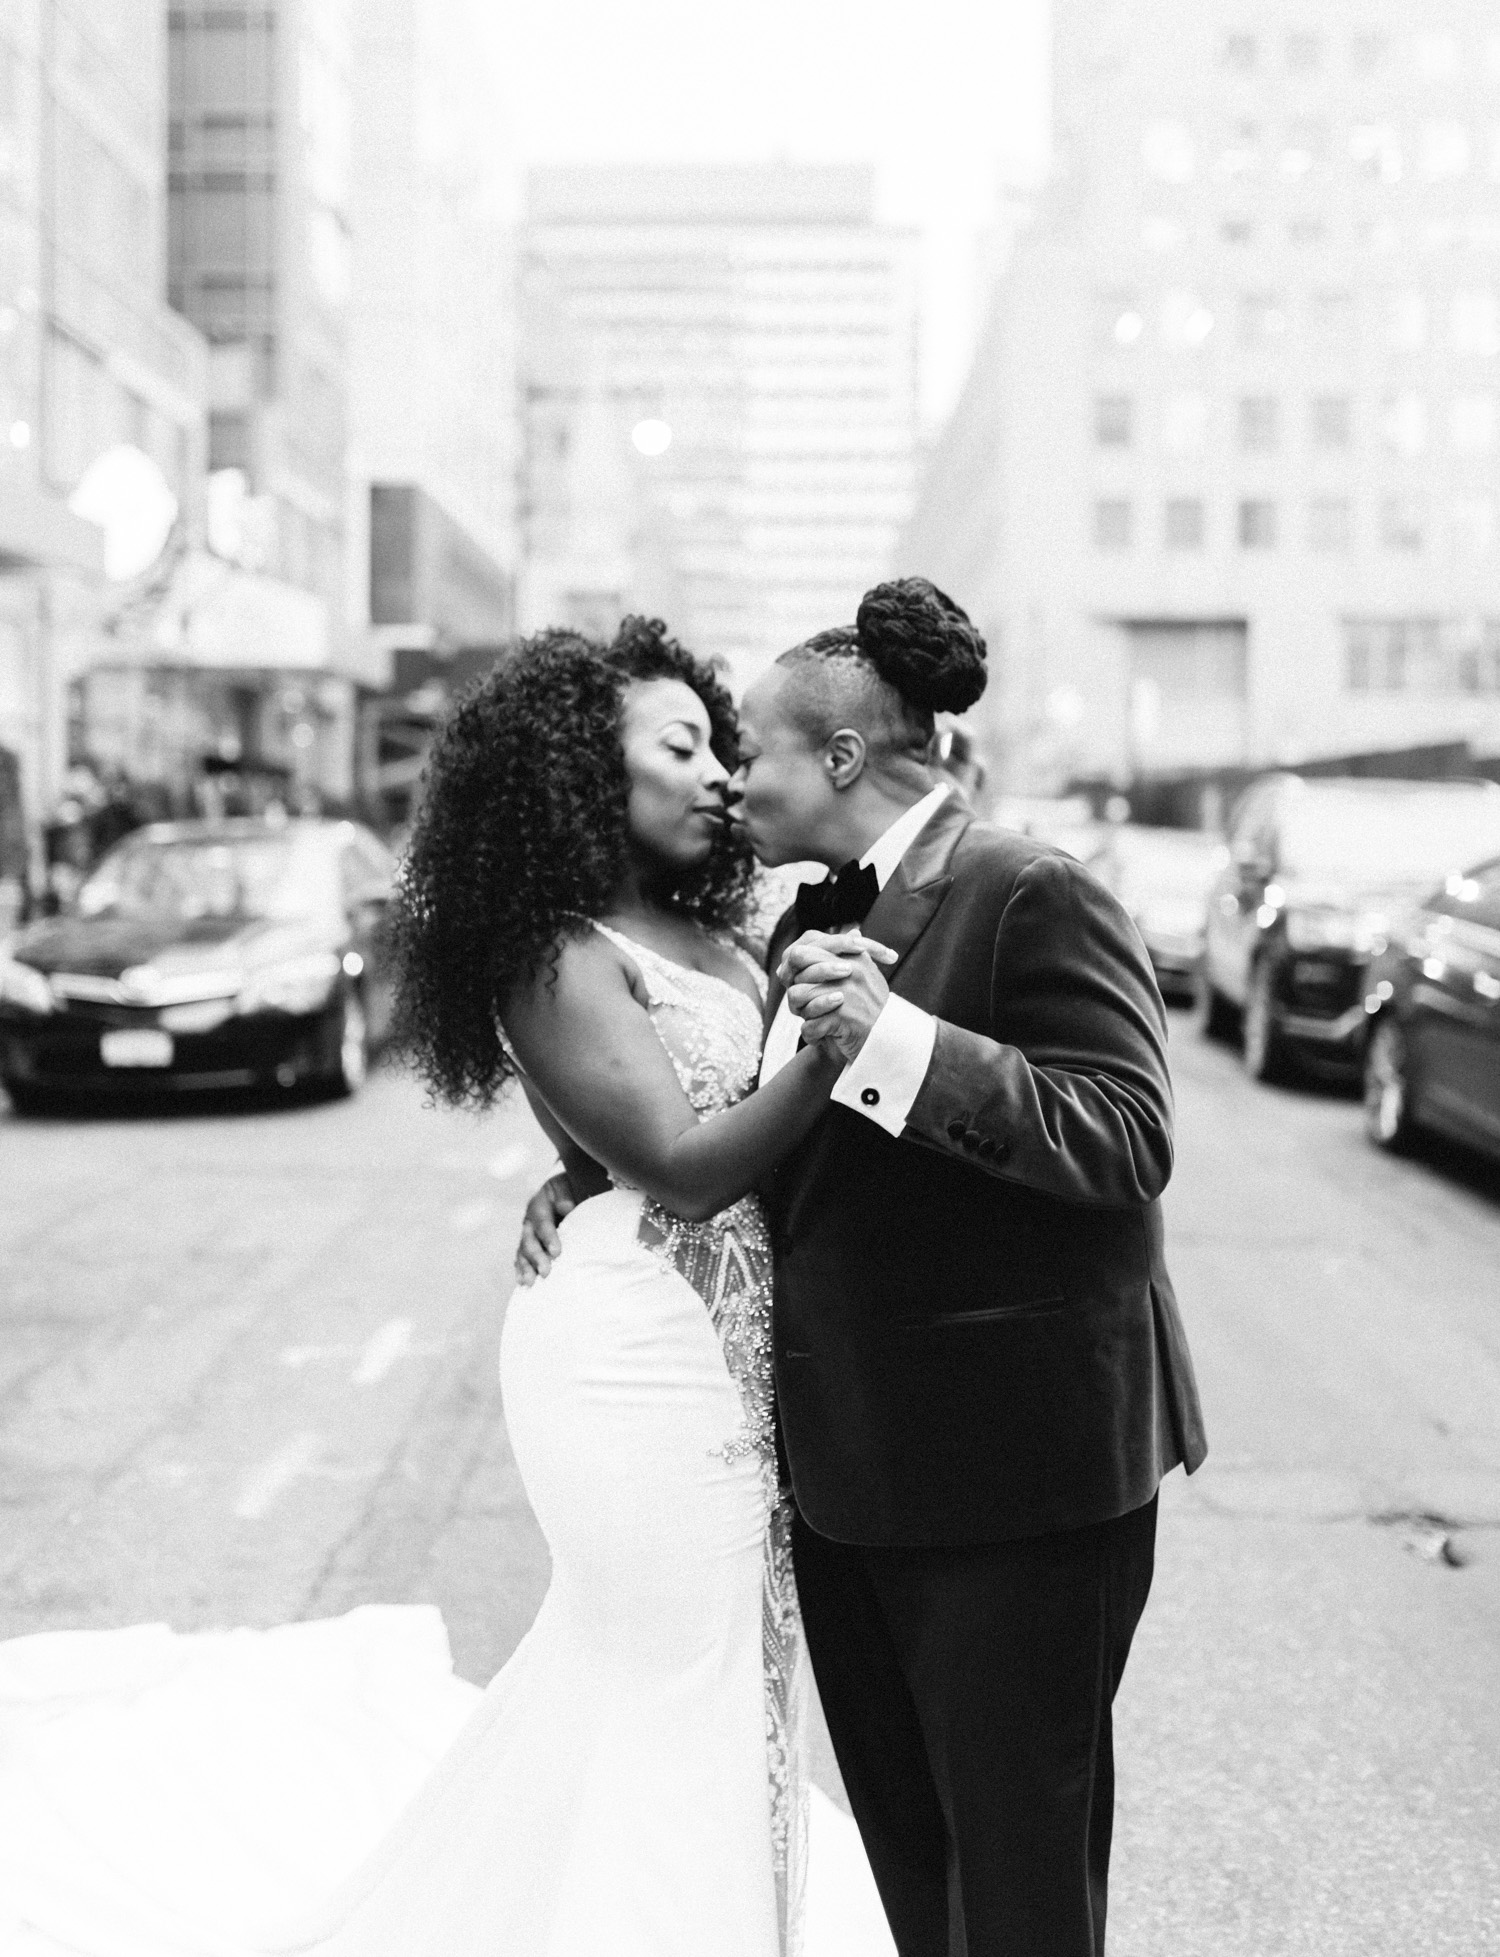 A black same sex couple kisses in the streets of New York City on their wedding day in Brooklyn